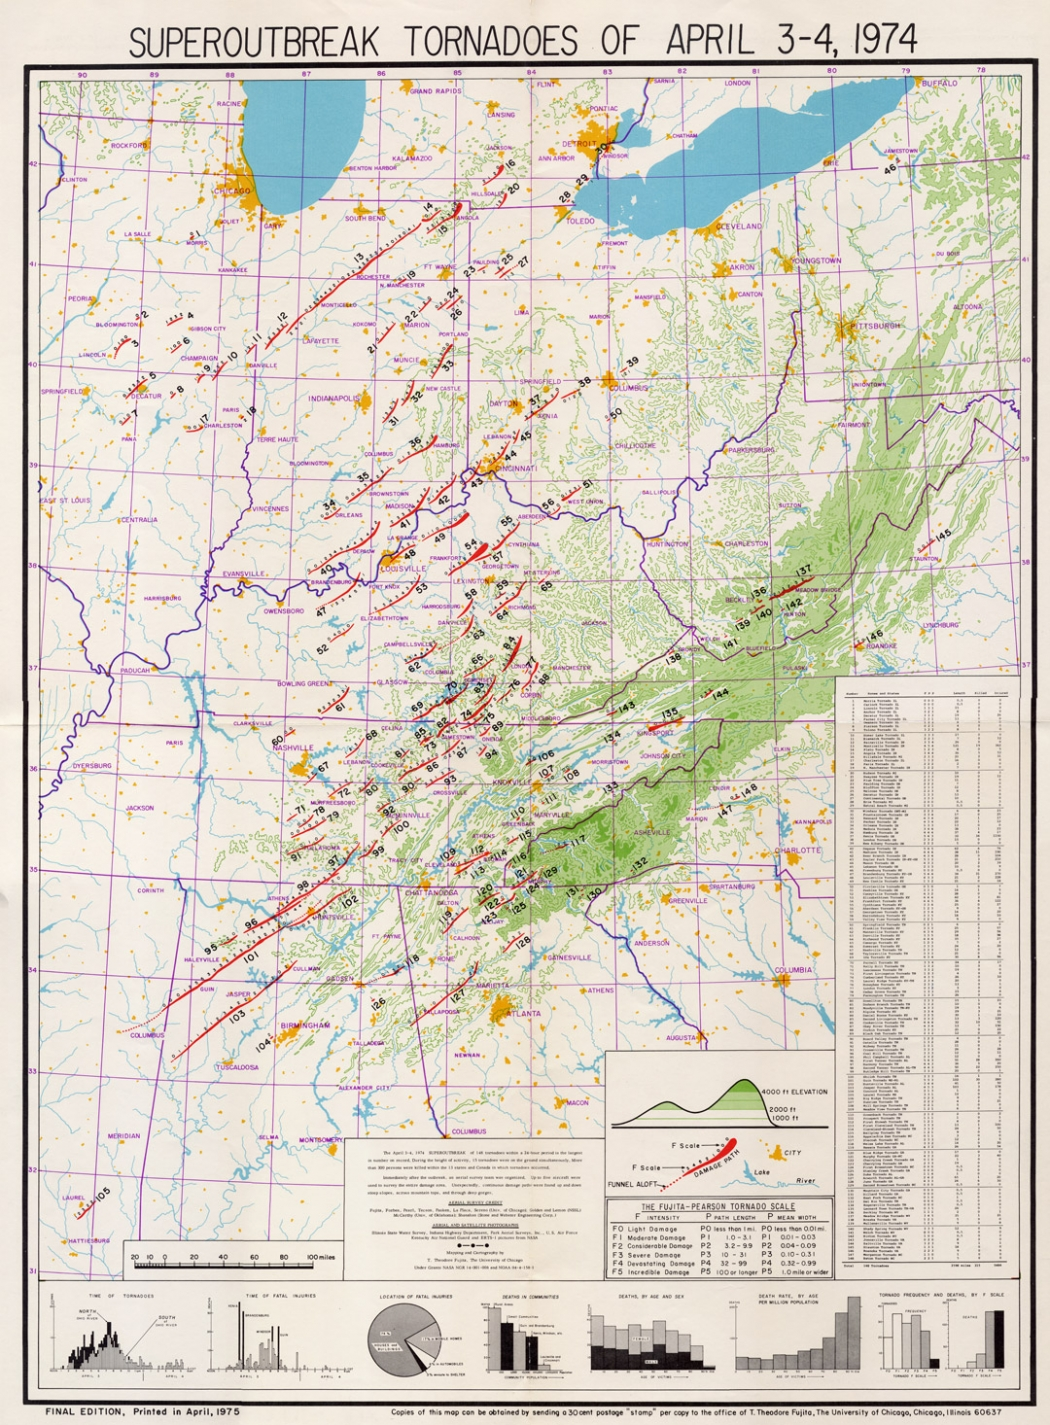 A Hand Drawn Map By Ted Fujita Showing The 1974 Super Outbreak Of Tornadoes In The U S Click Image To Enlarge Credit National Weather Service